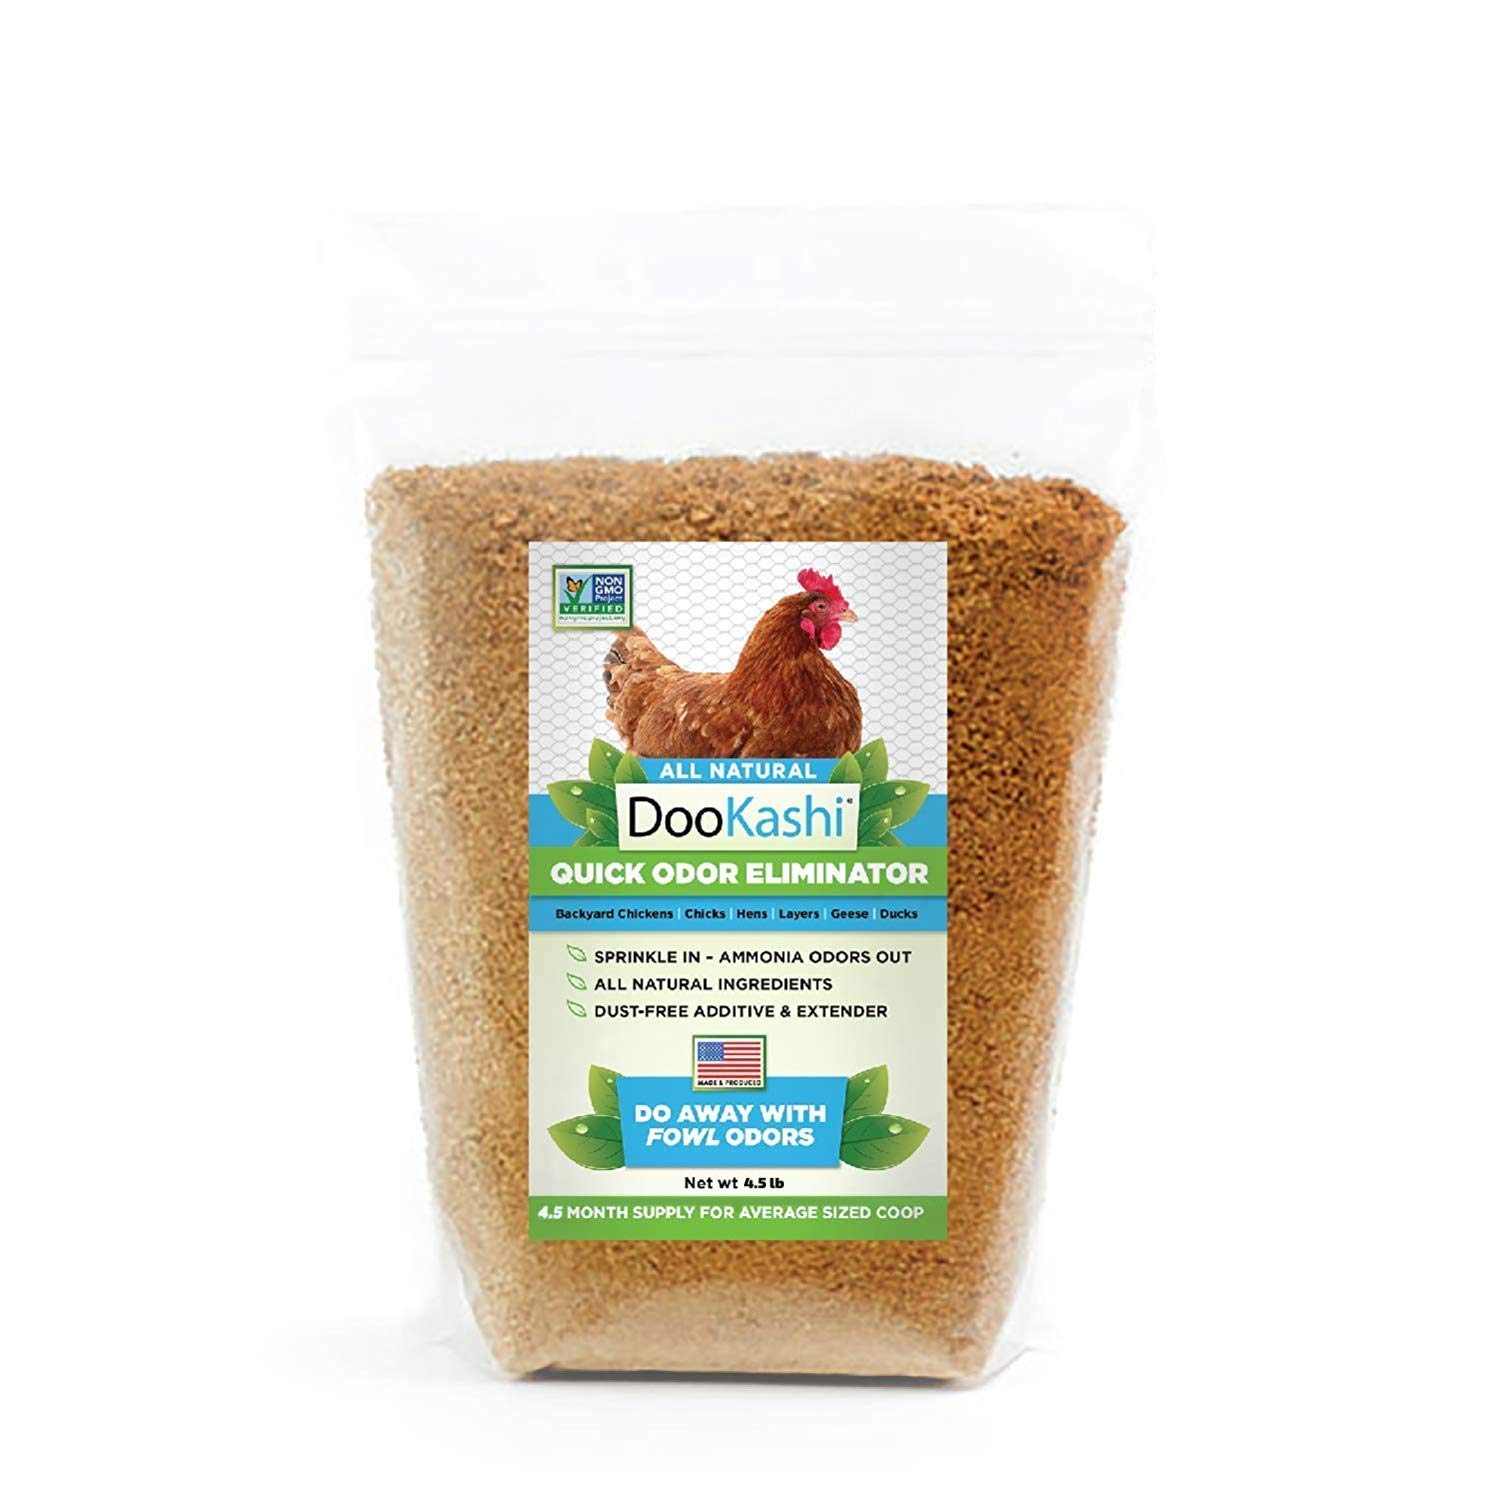 DooKashi for Poultry Chicken Coop Natural Odor Eliminator & Compost Accelerator - Probiotic Powered Bird Poop Remover, Ammonia Cleaner and Pet Odor Neutralizer for All Types of Chicken Bedding, 4.5lb by DooKashi